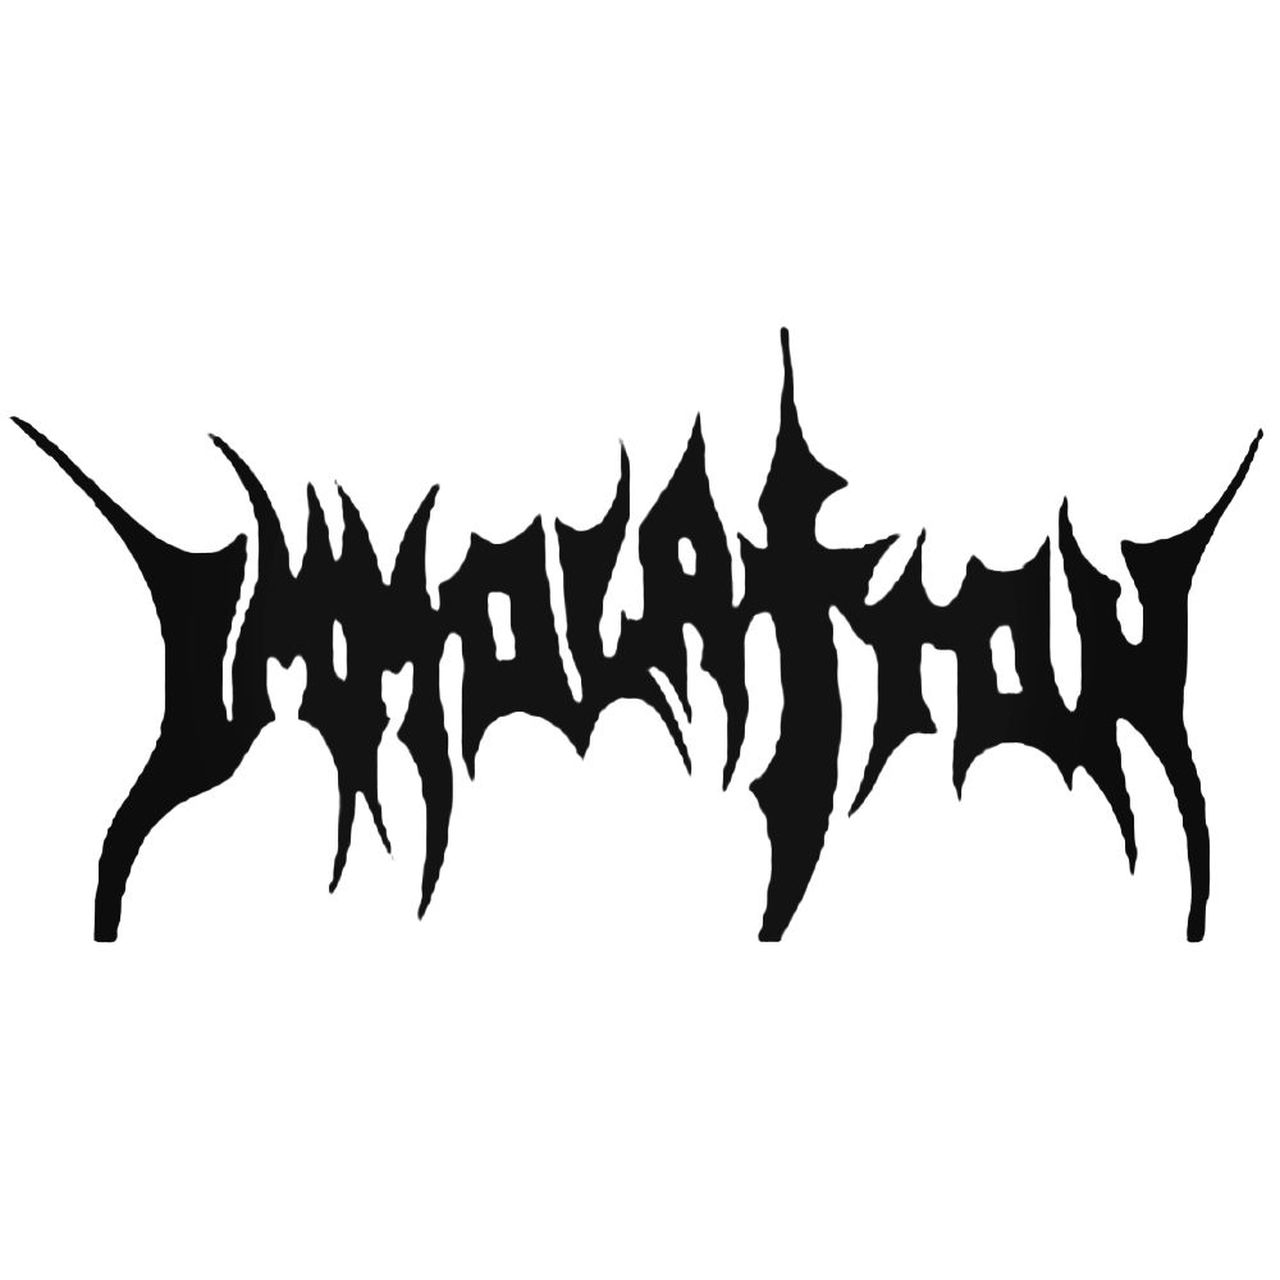 Immolation Band Decal Sticker.